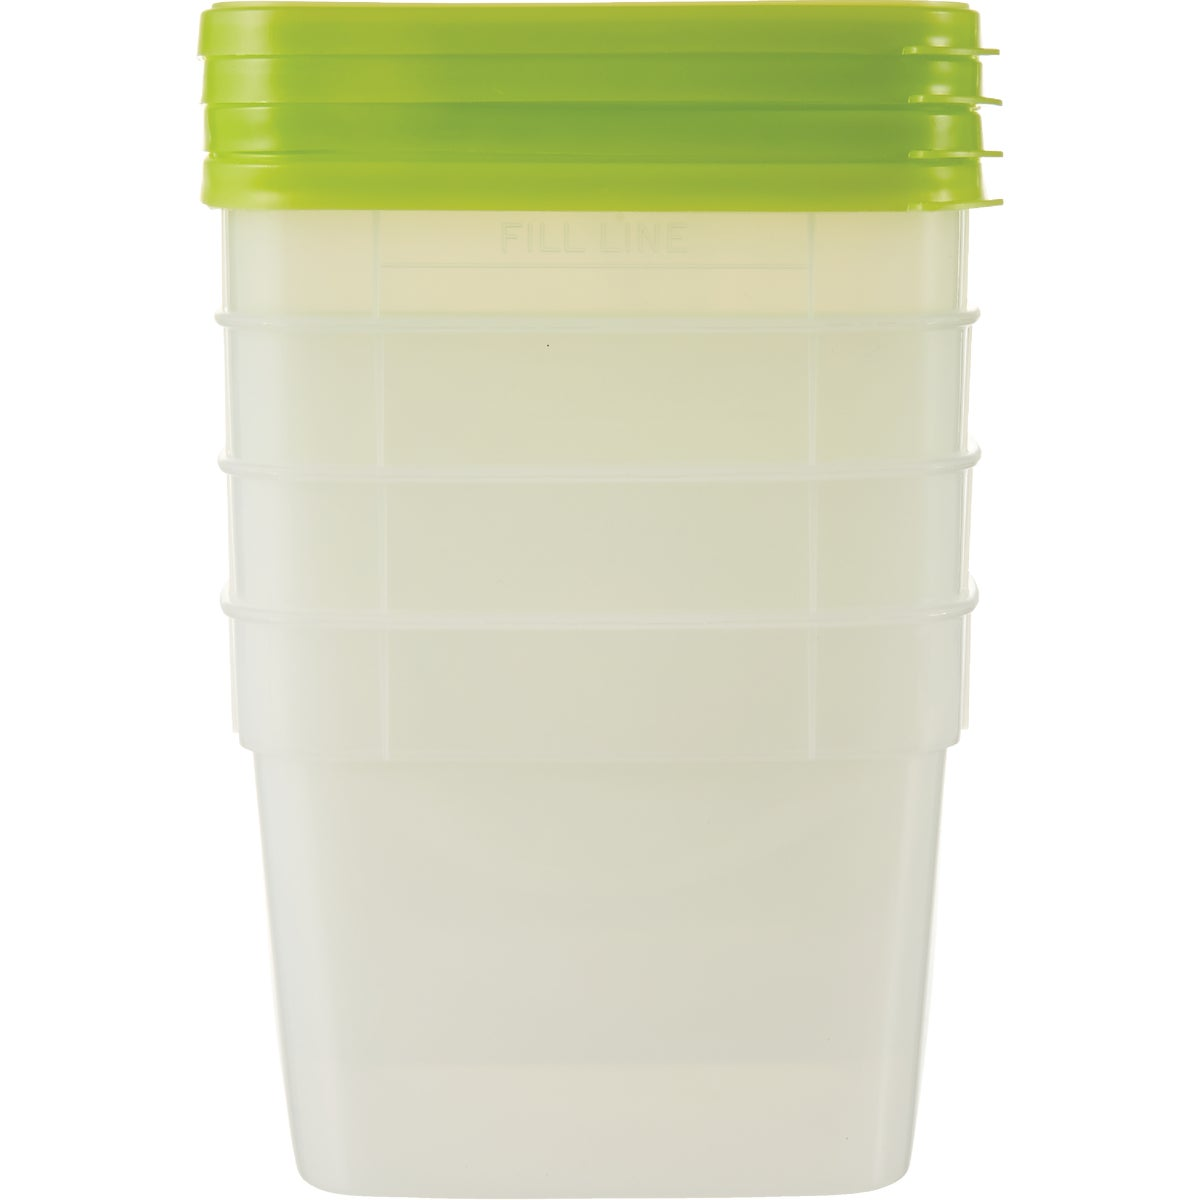 1-1/2PT STORAG CONTAINER - 00043 by Arrow Plastic Mfg Co